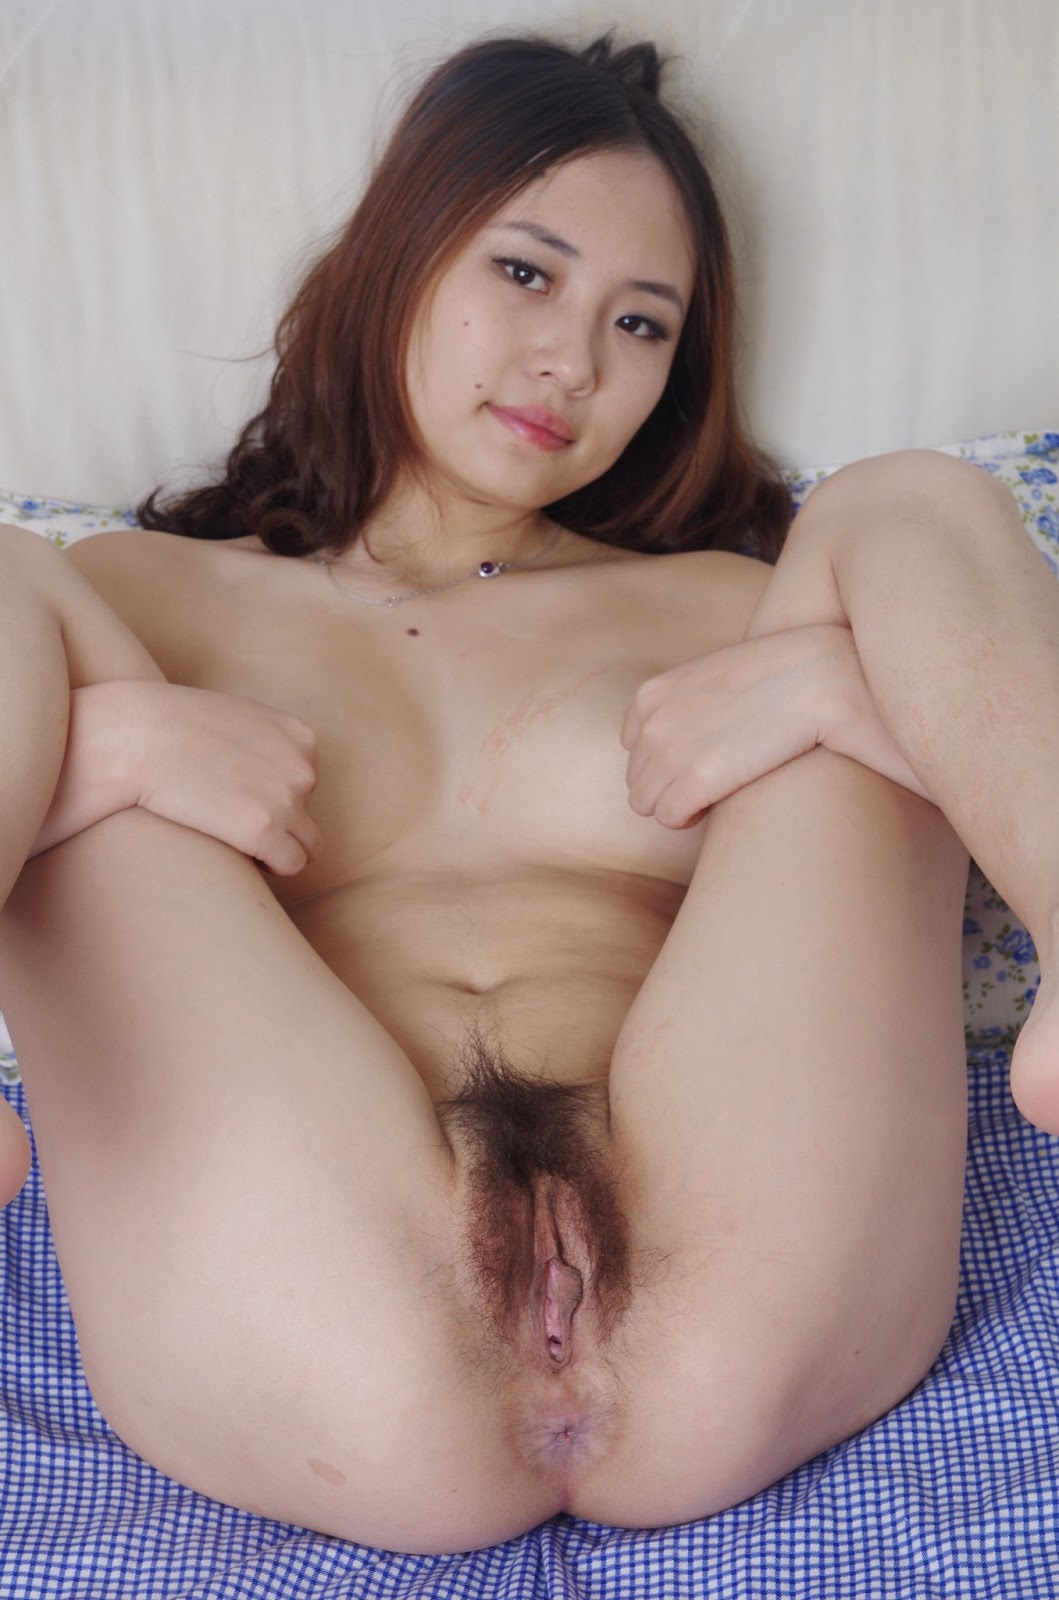 FAD 3.0: Cute Asian Nude Girl